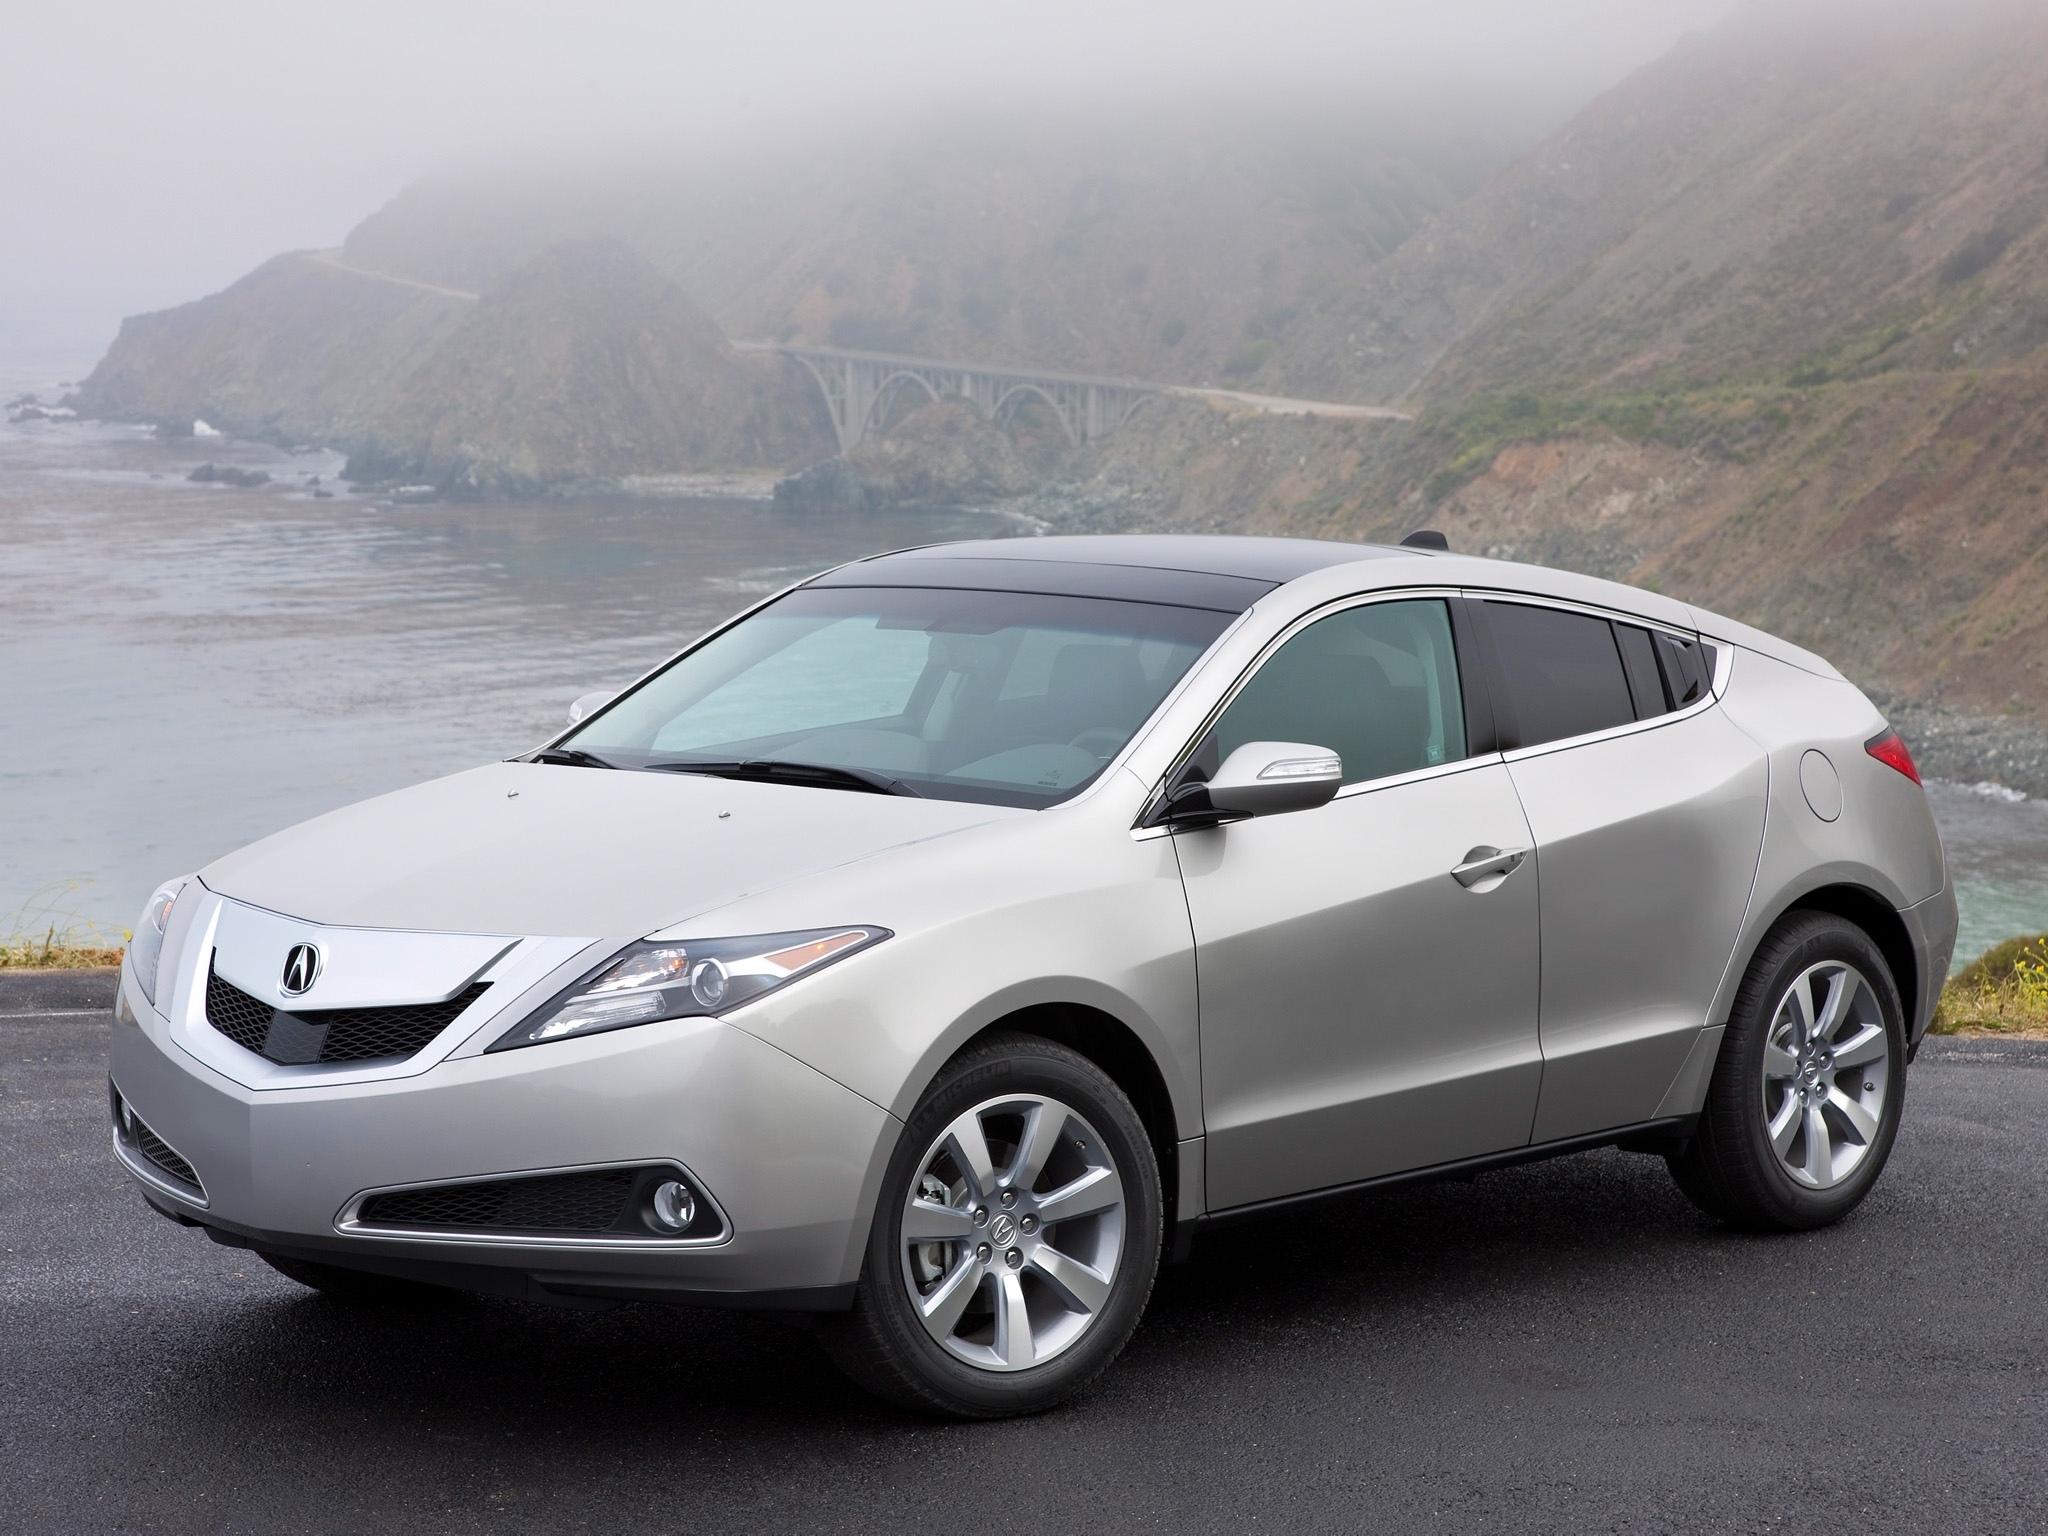 157698 download wallpaper Cars, Acura, Zdx, 2009, Silver Metallic, Side View, Style, Auto, Akura, Fog, Sea, Bridge, Mountains screensavers and pictures for free